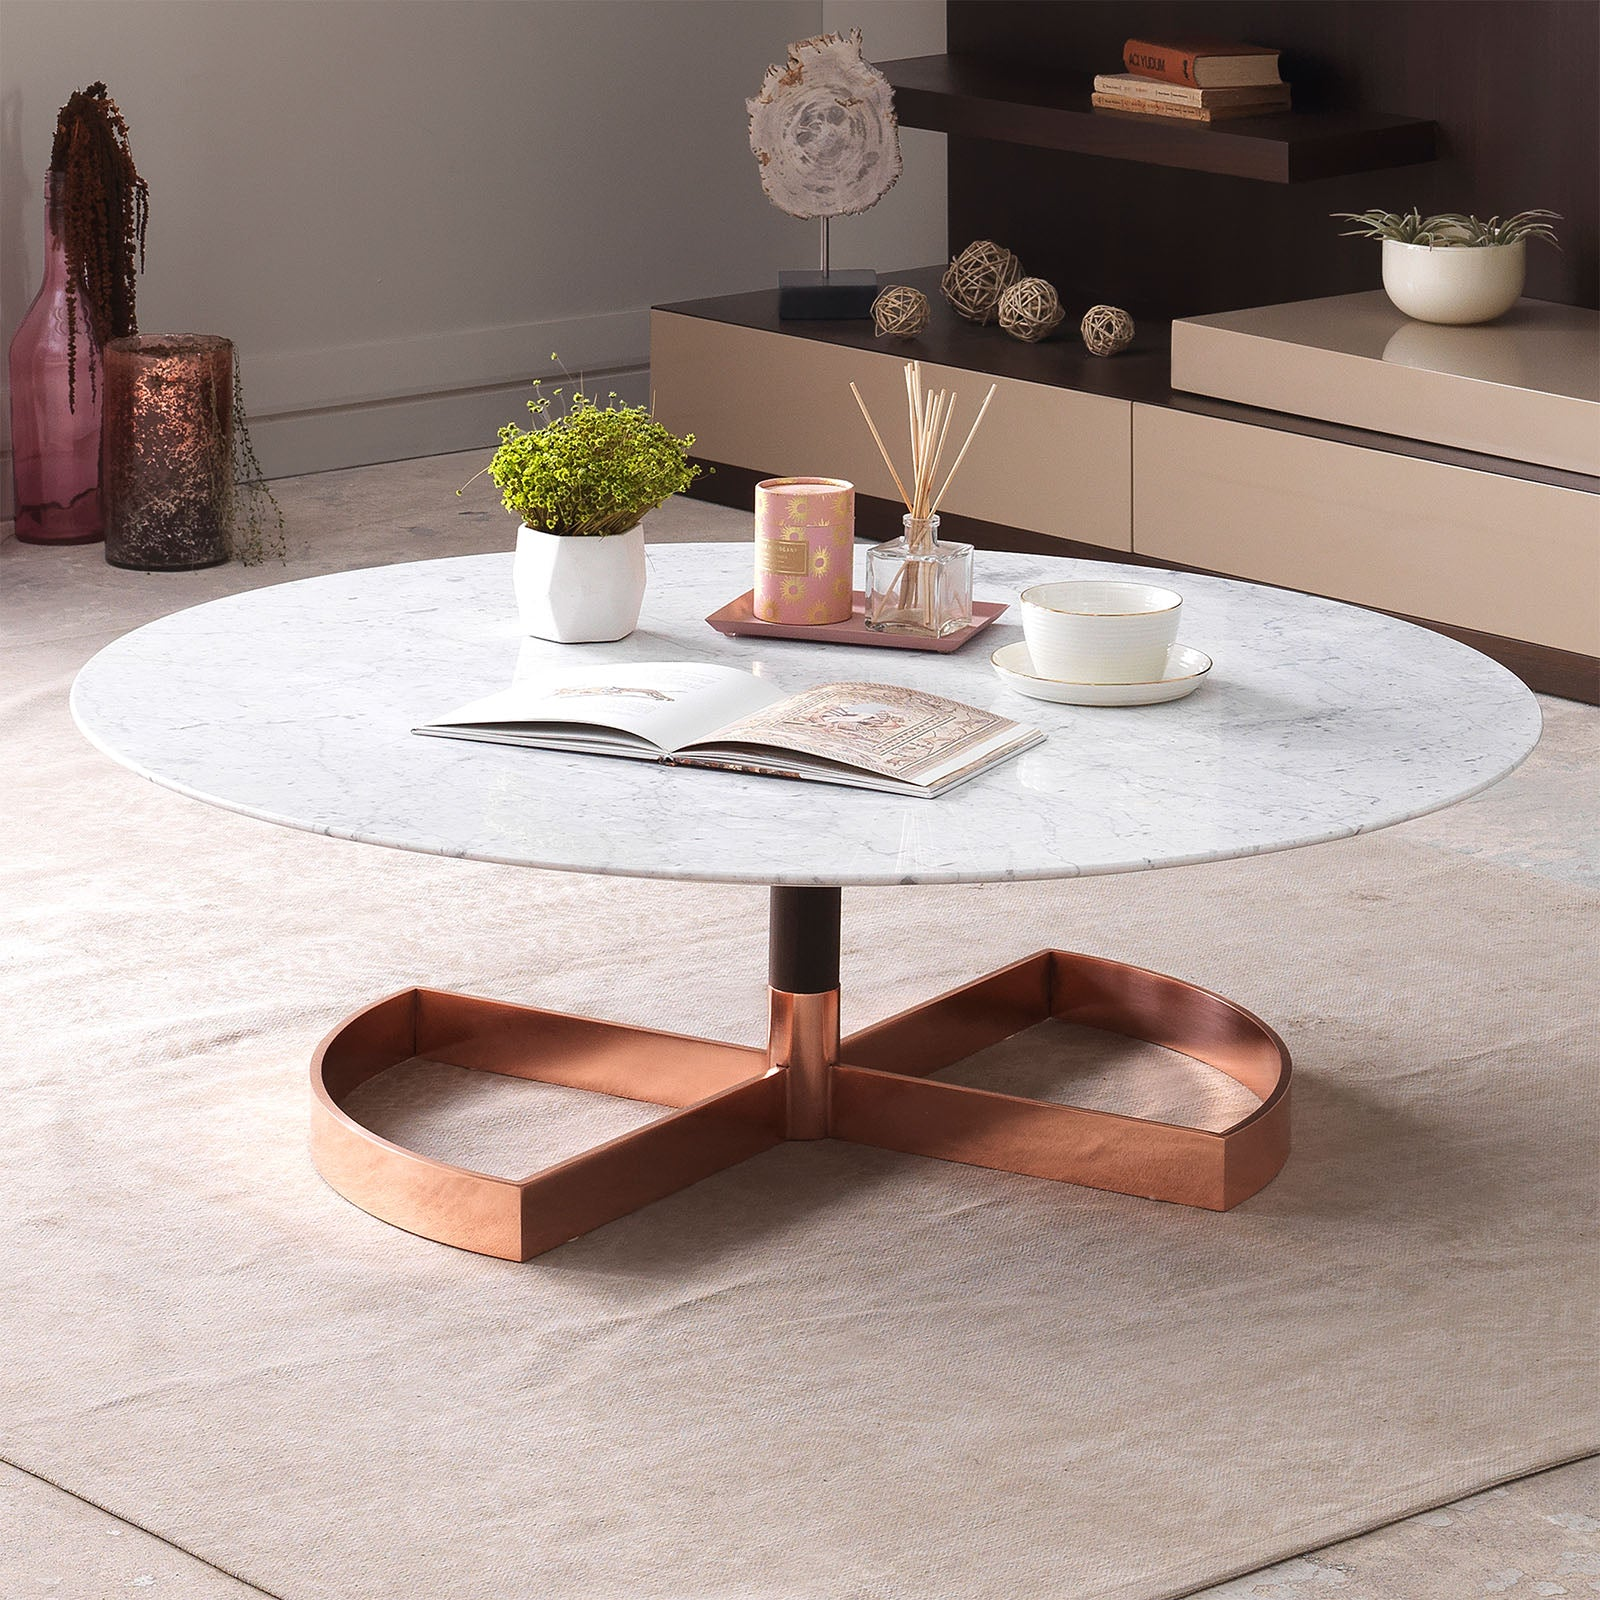 Pre-Order 40 days delivery ANTARES CENTER TABLE ANTARES-001 -  اطلب مسبقًا 60 يومًا من طاولة وسط أنتاريس - Shop Online Furniture and Home Decor Store in Dubai, UAE at ebarza